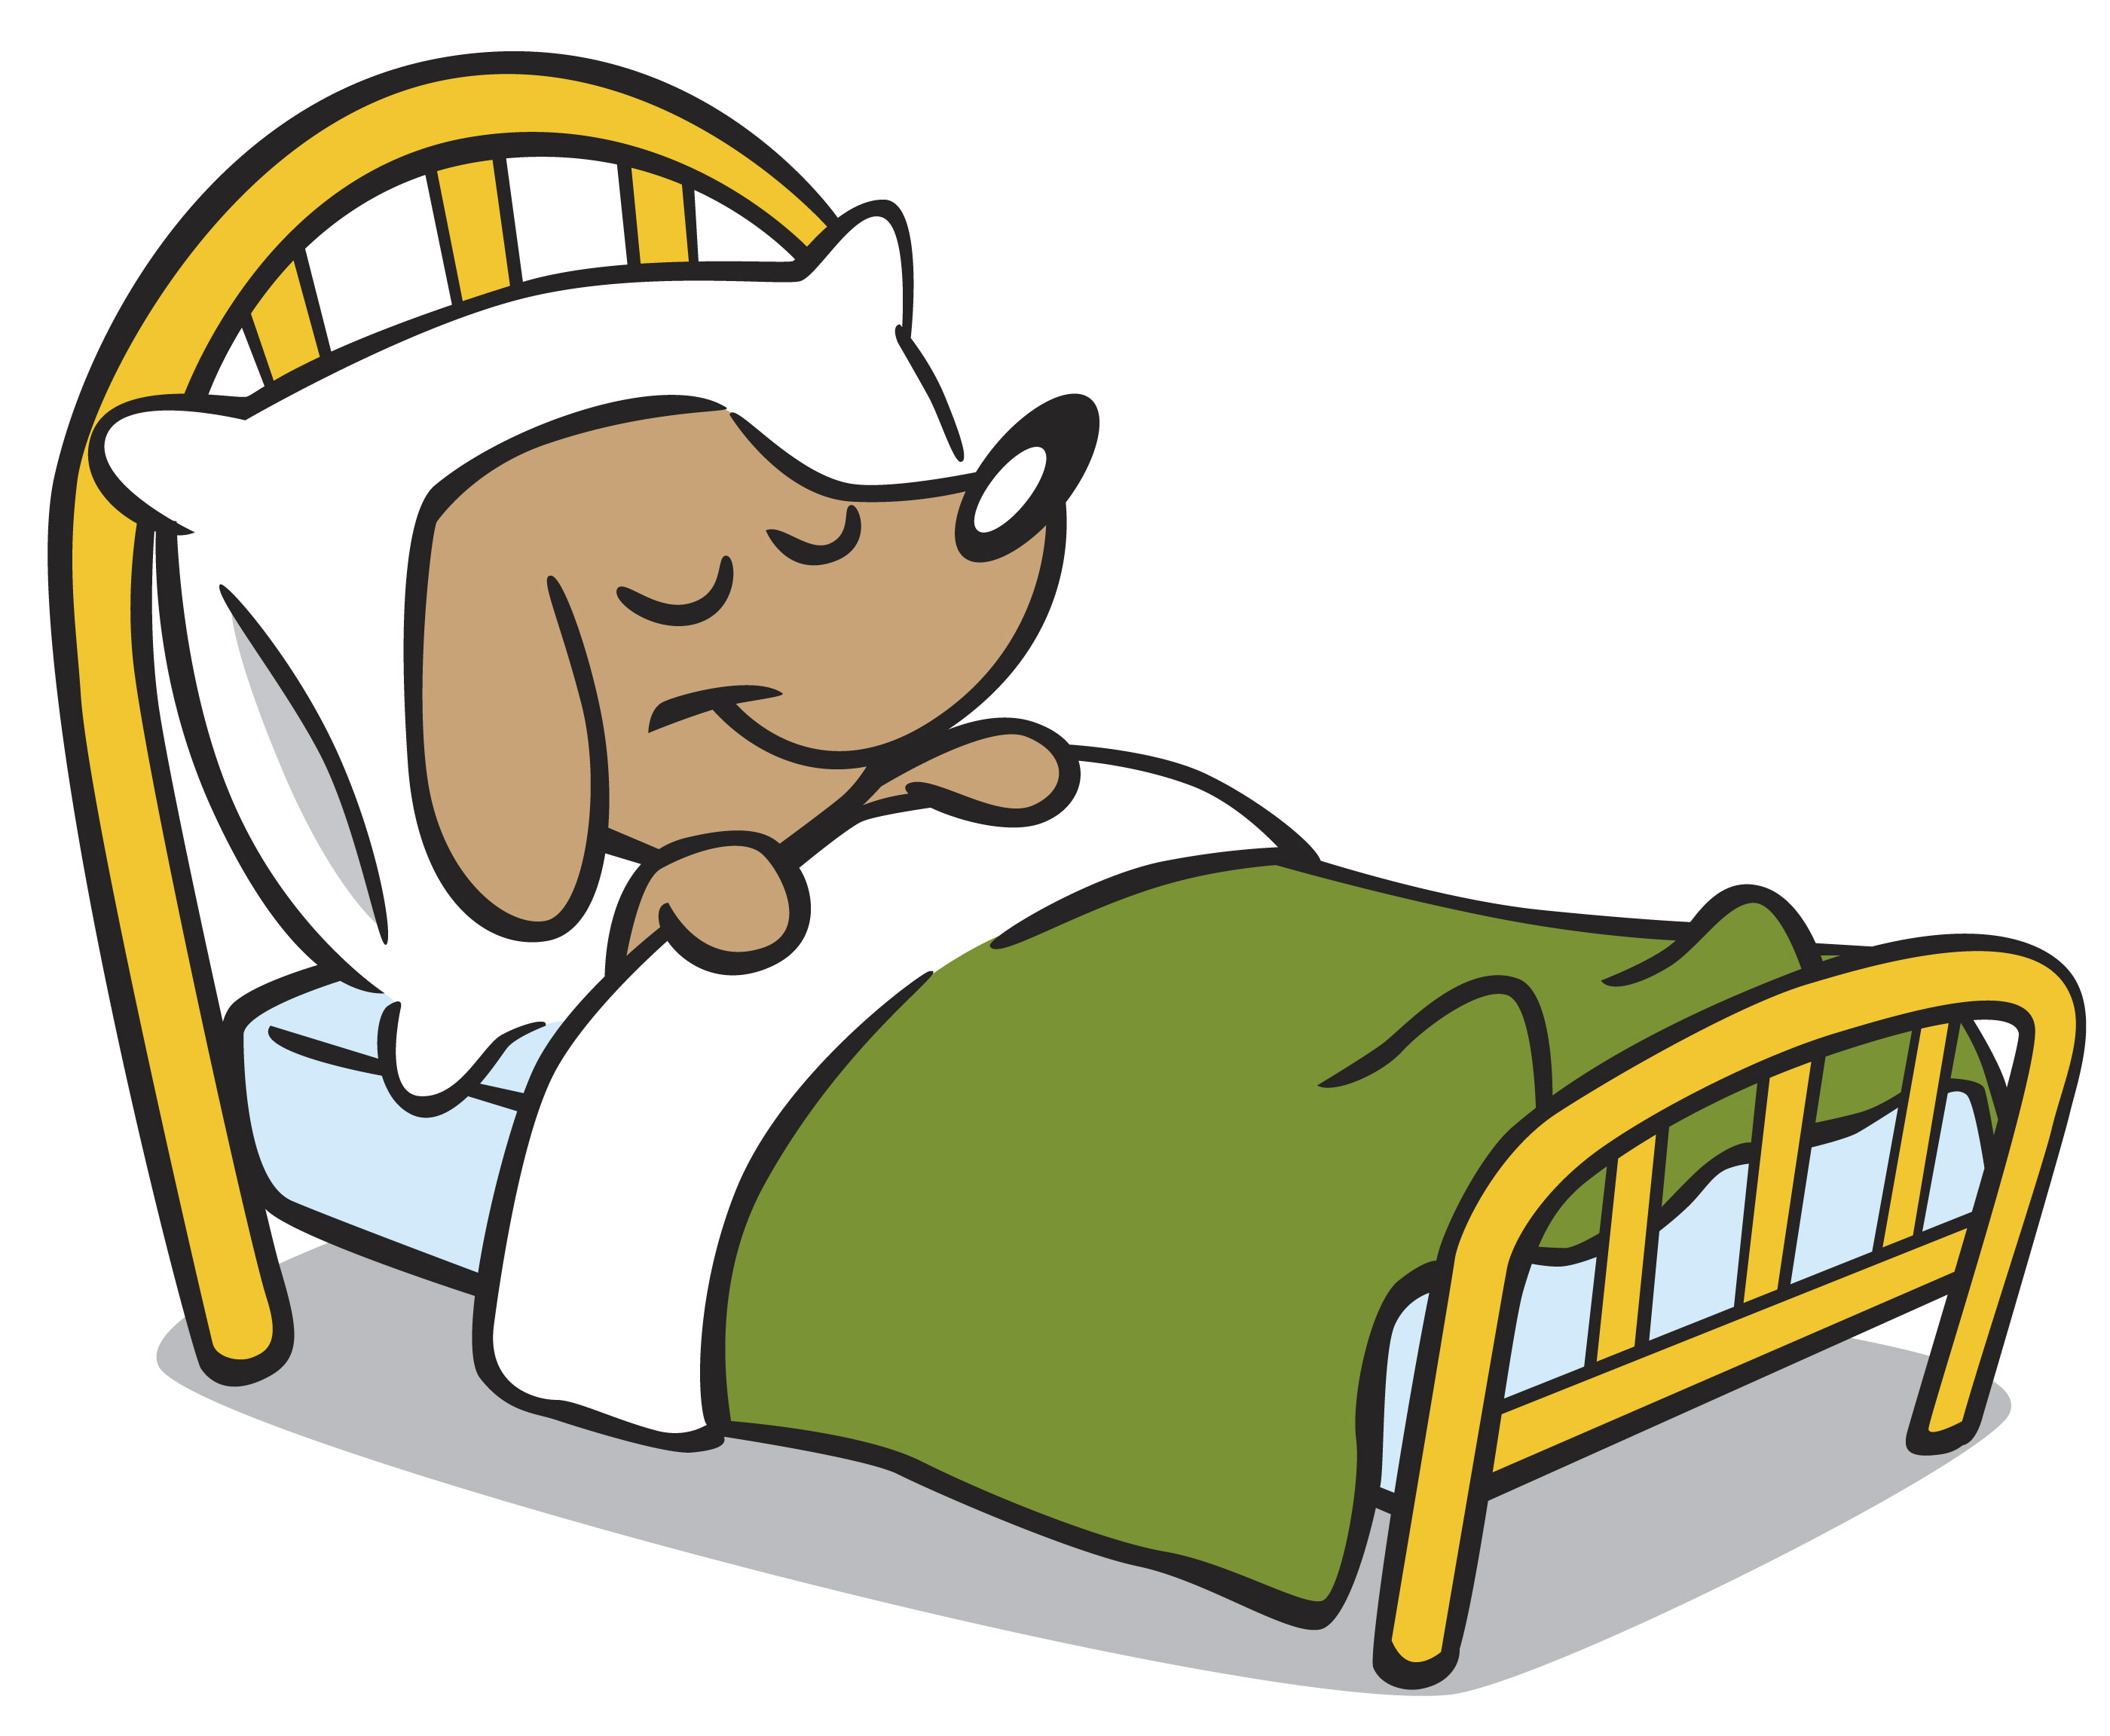 Bed clipart couple. Going to sleep free